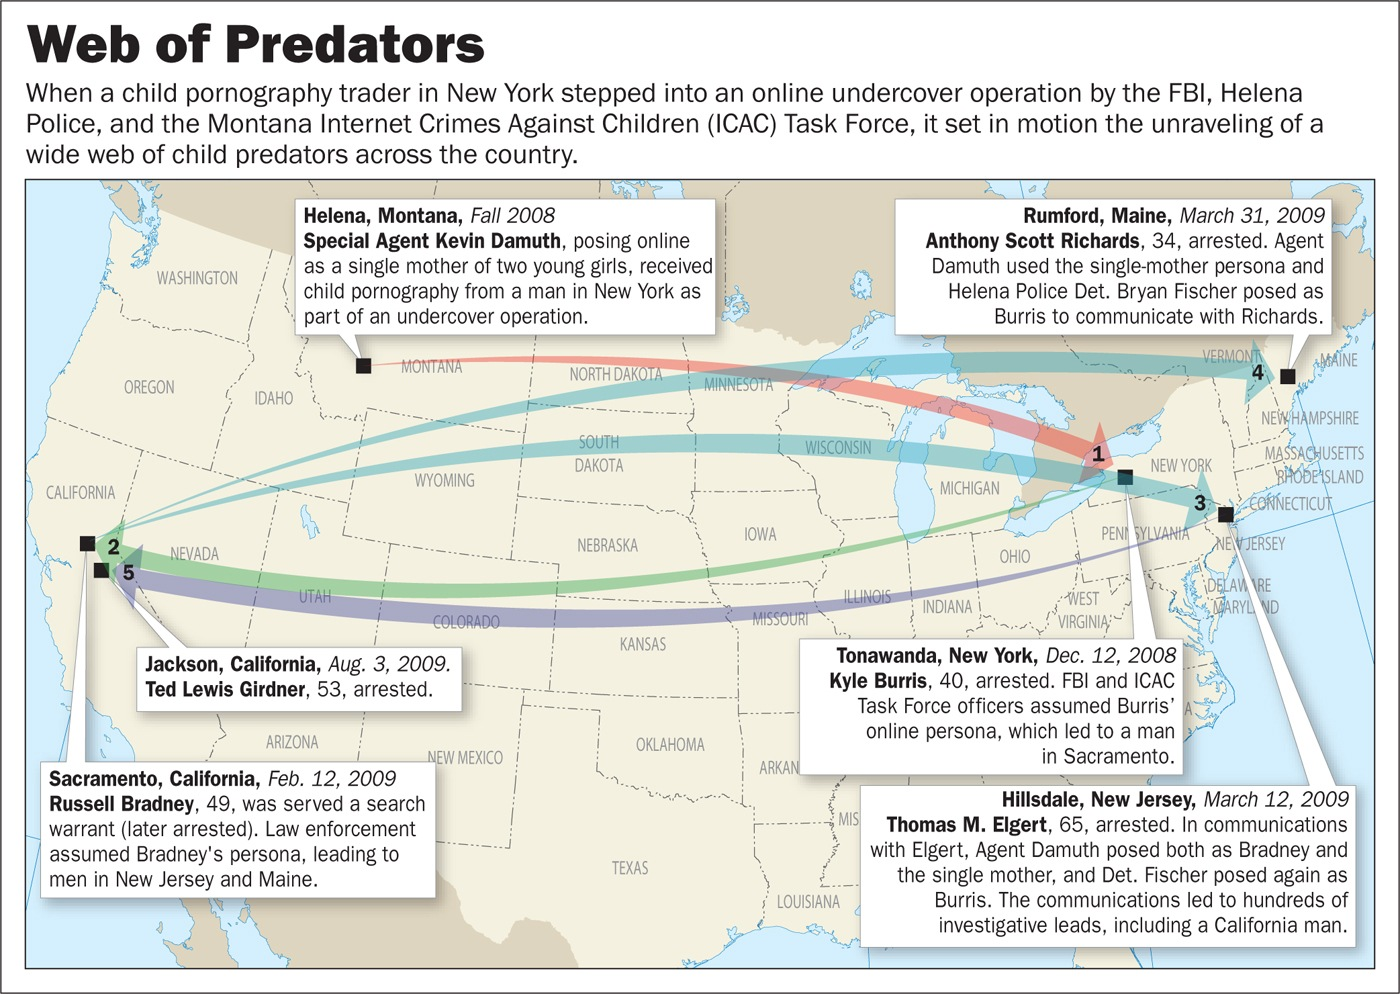 FBI in Montana: Online Operation Reveals a Network of Predators